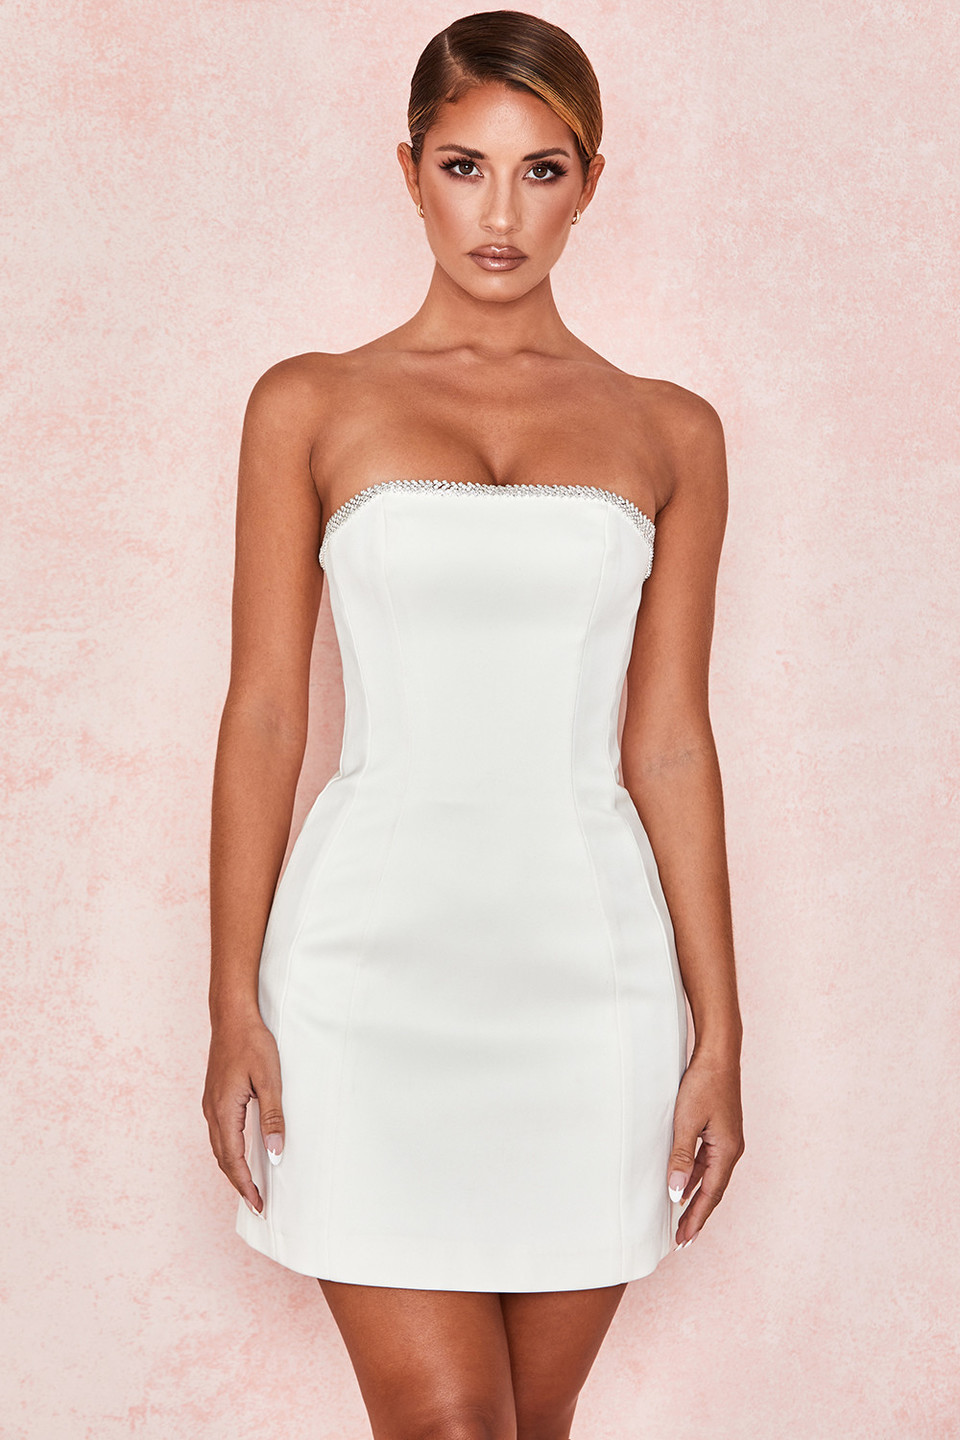 Rowan Ivory Satin Crystal Strapless Dress